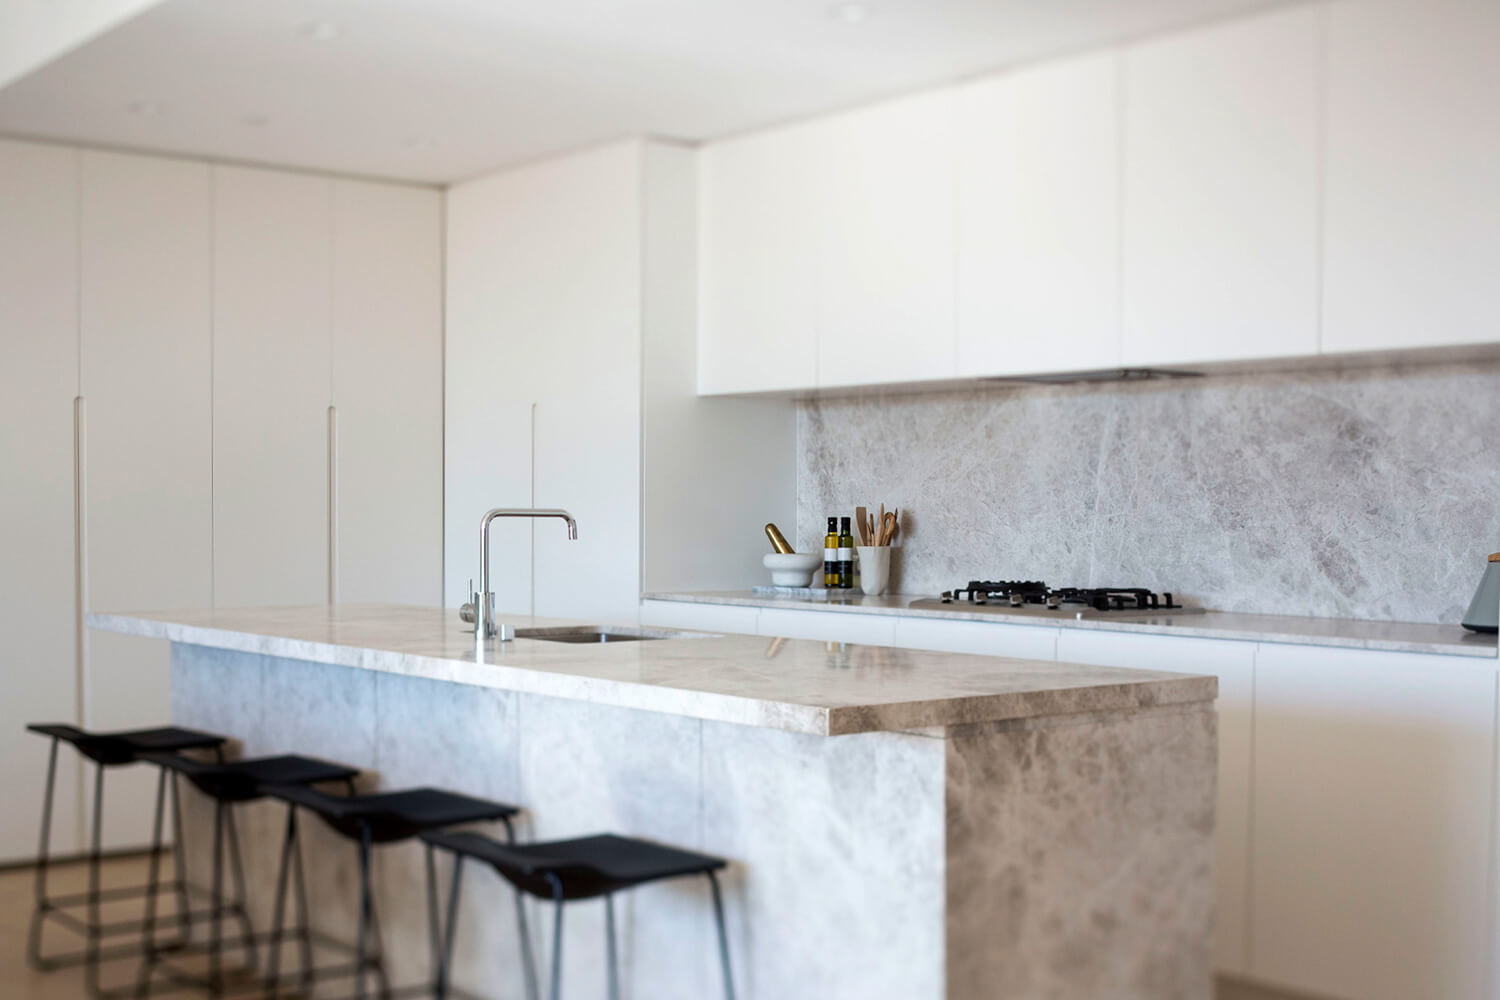 est living open house surry hills roof top apartment bresic whitney.05